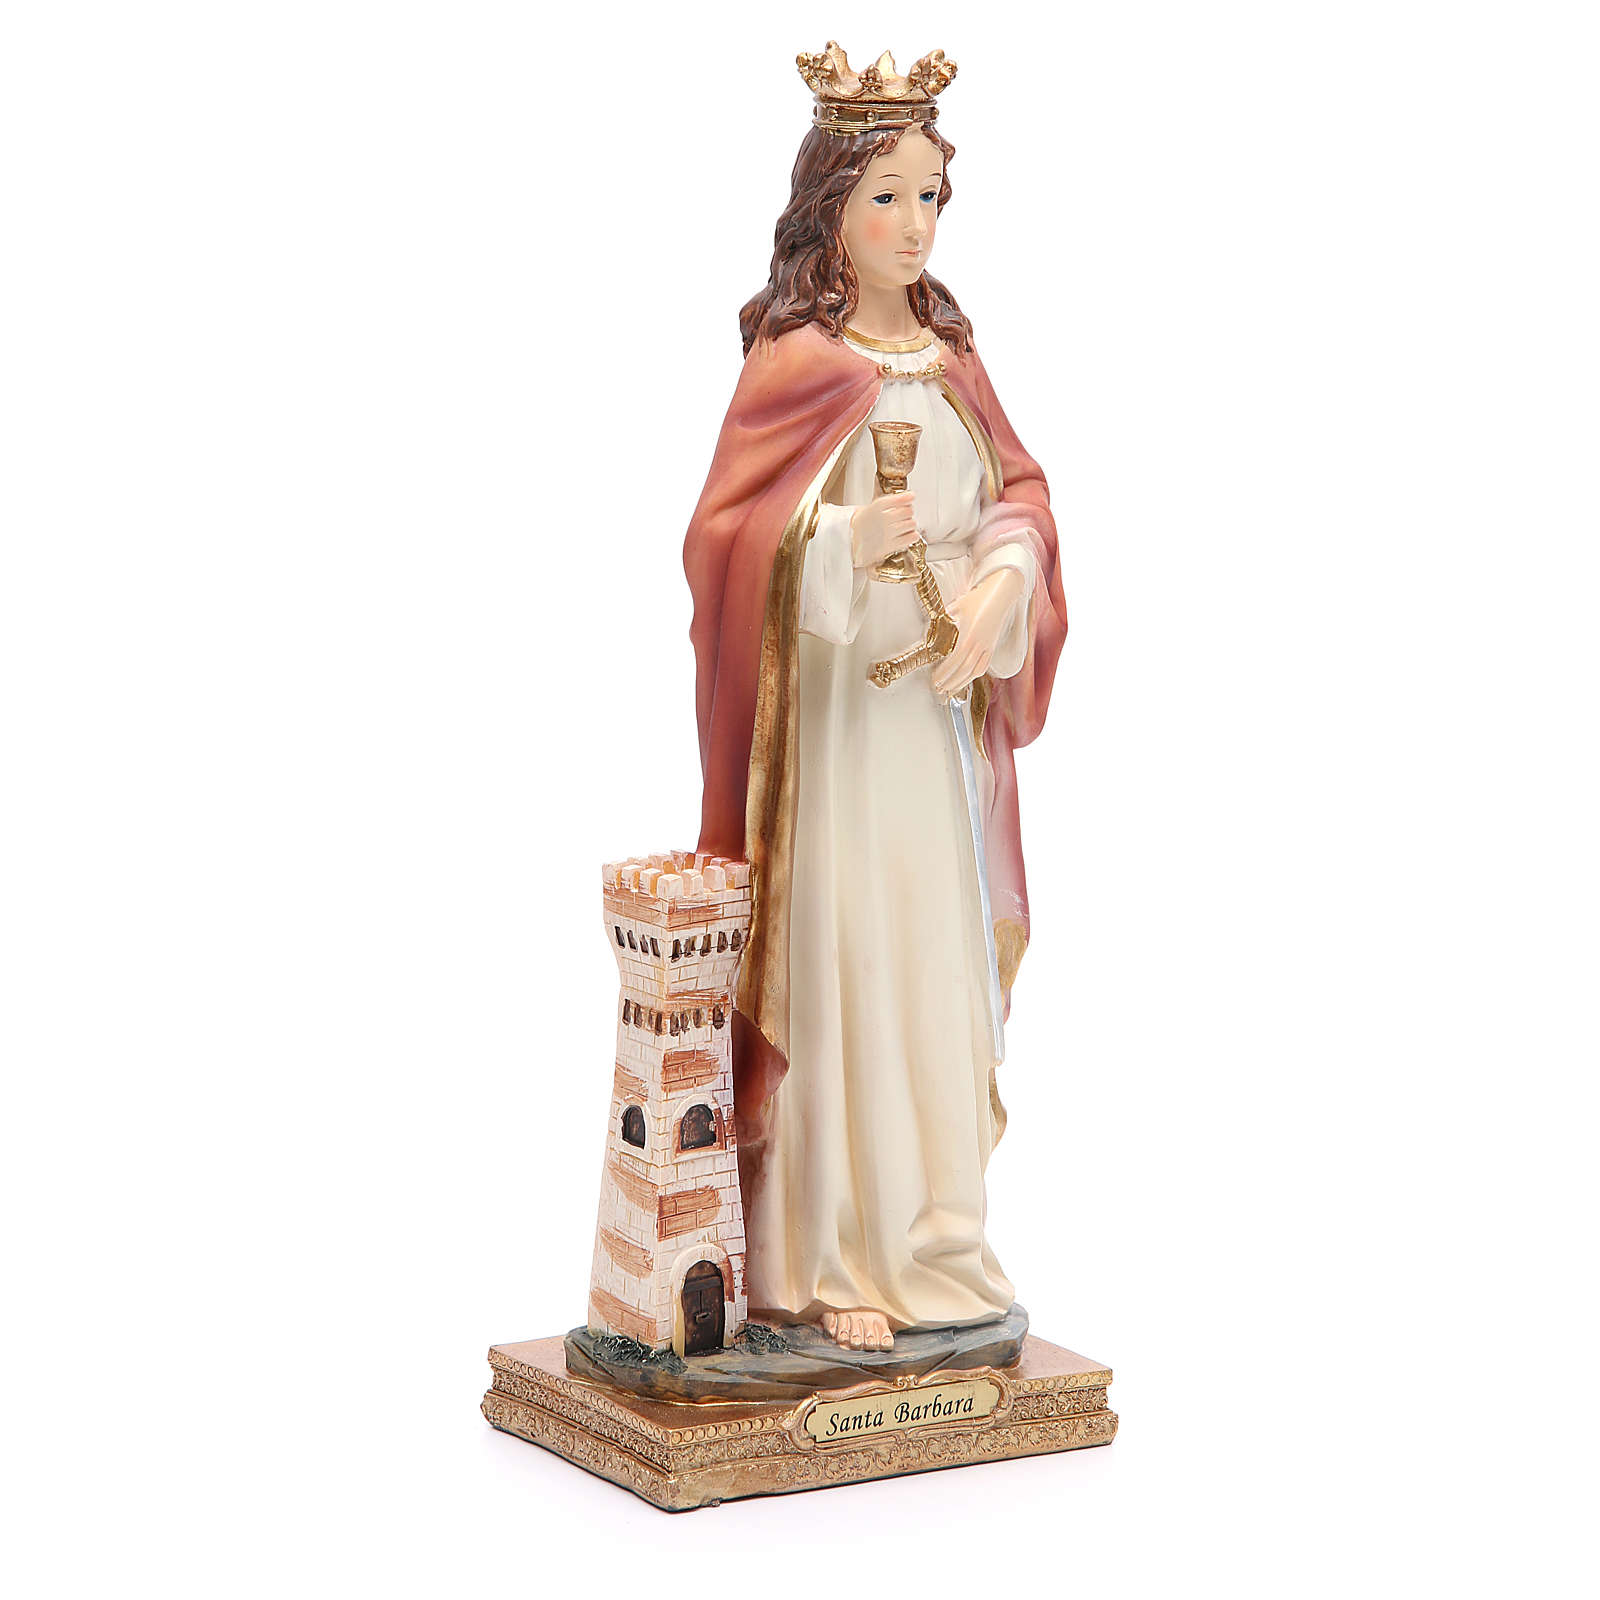 Saint Barbara resin statue 12.5 inches 4